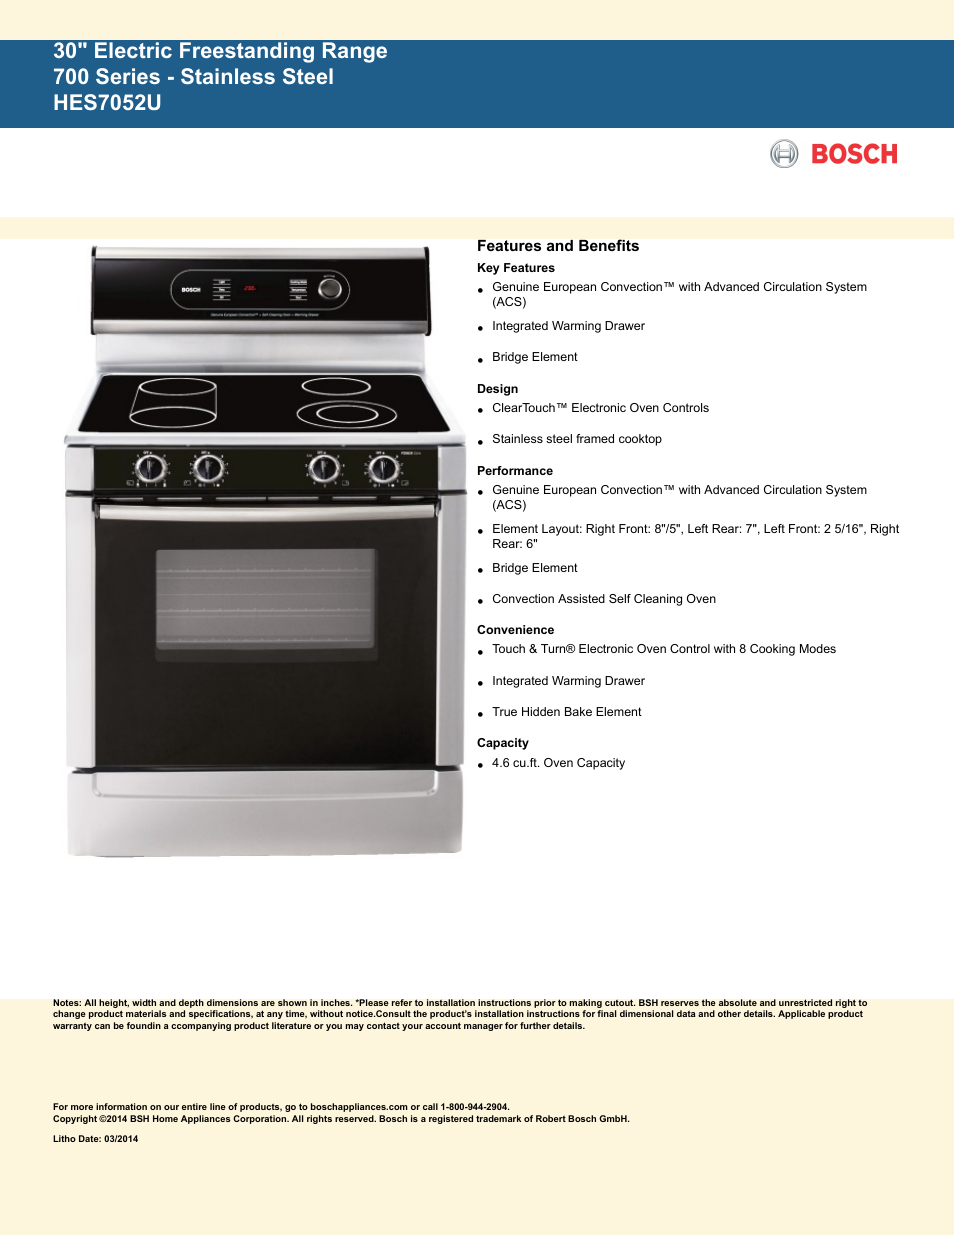 Bosch Hes7052u User Manual 2 Pages